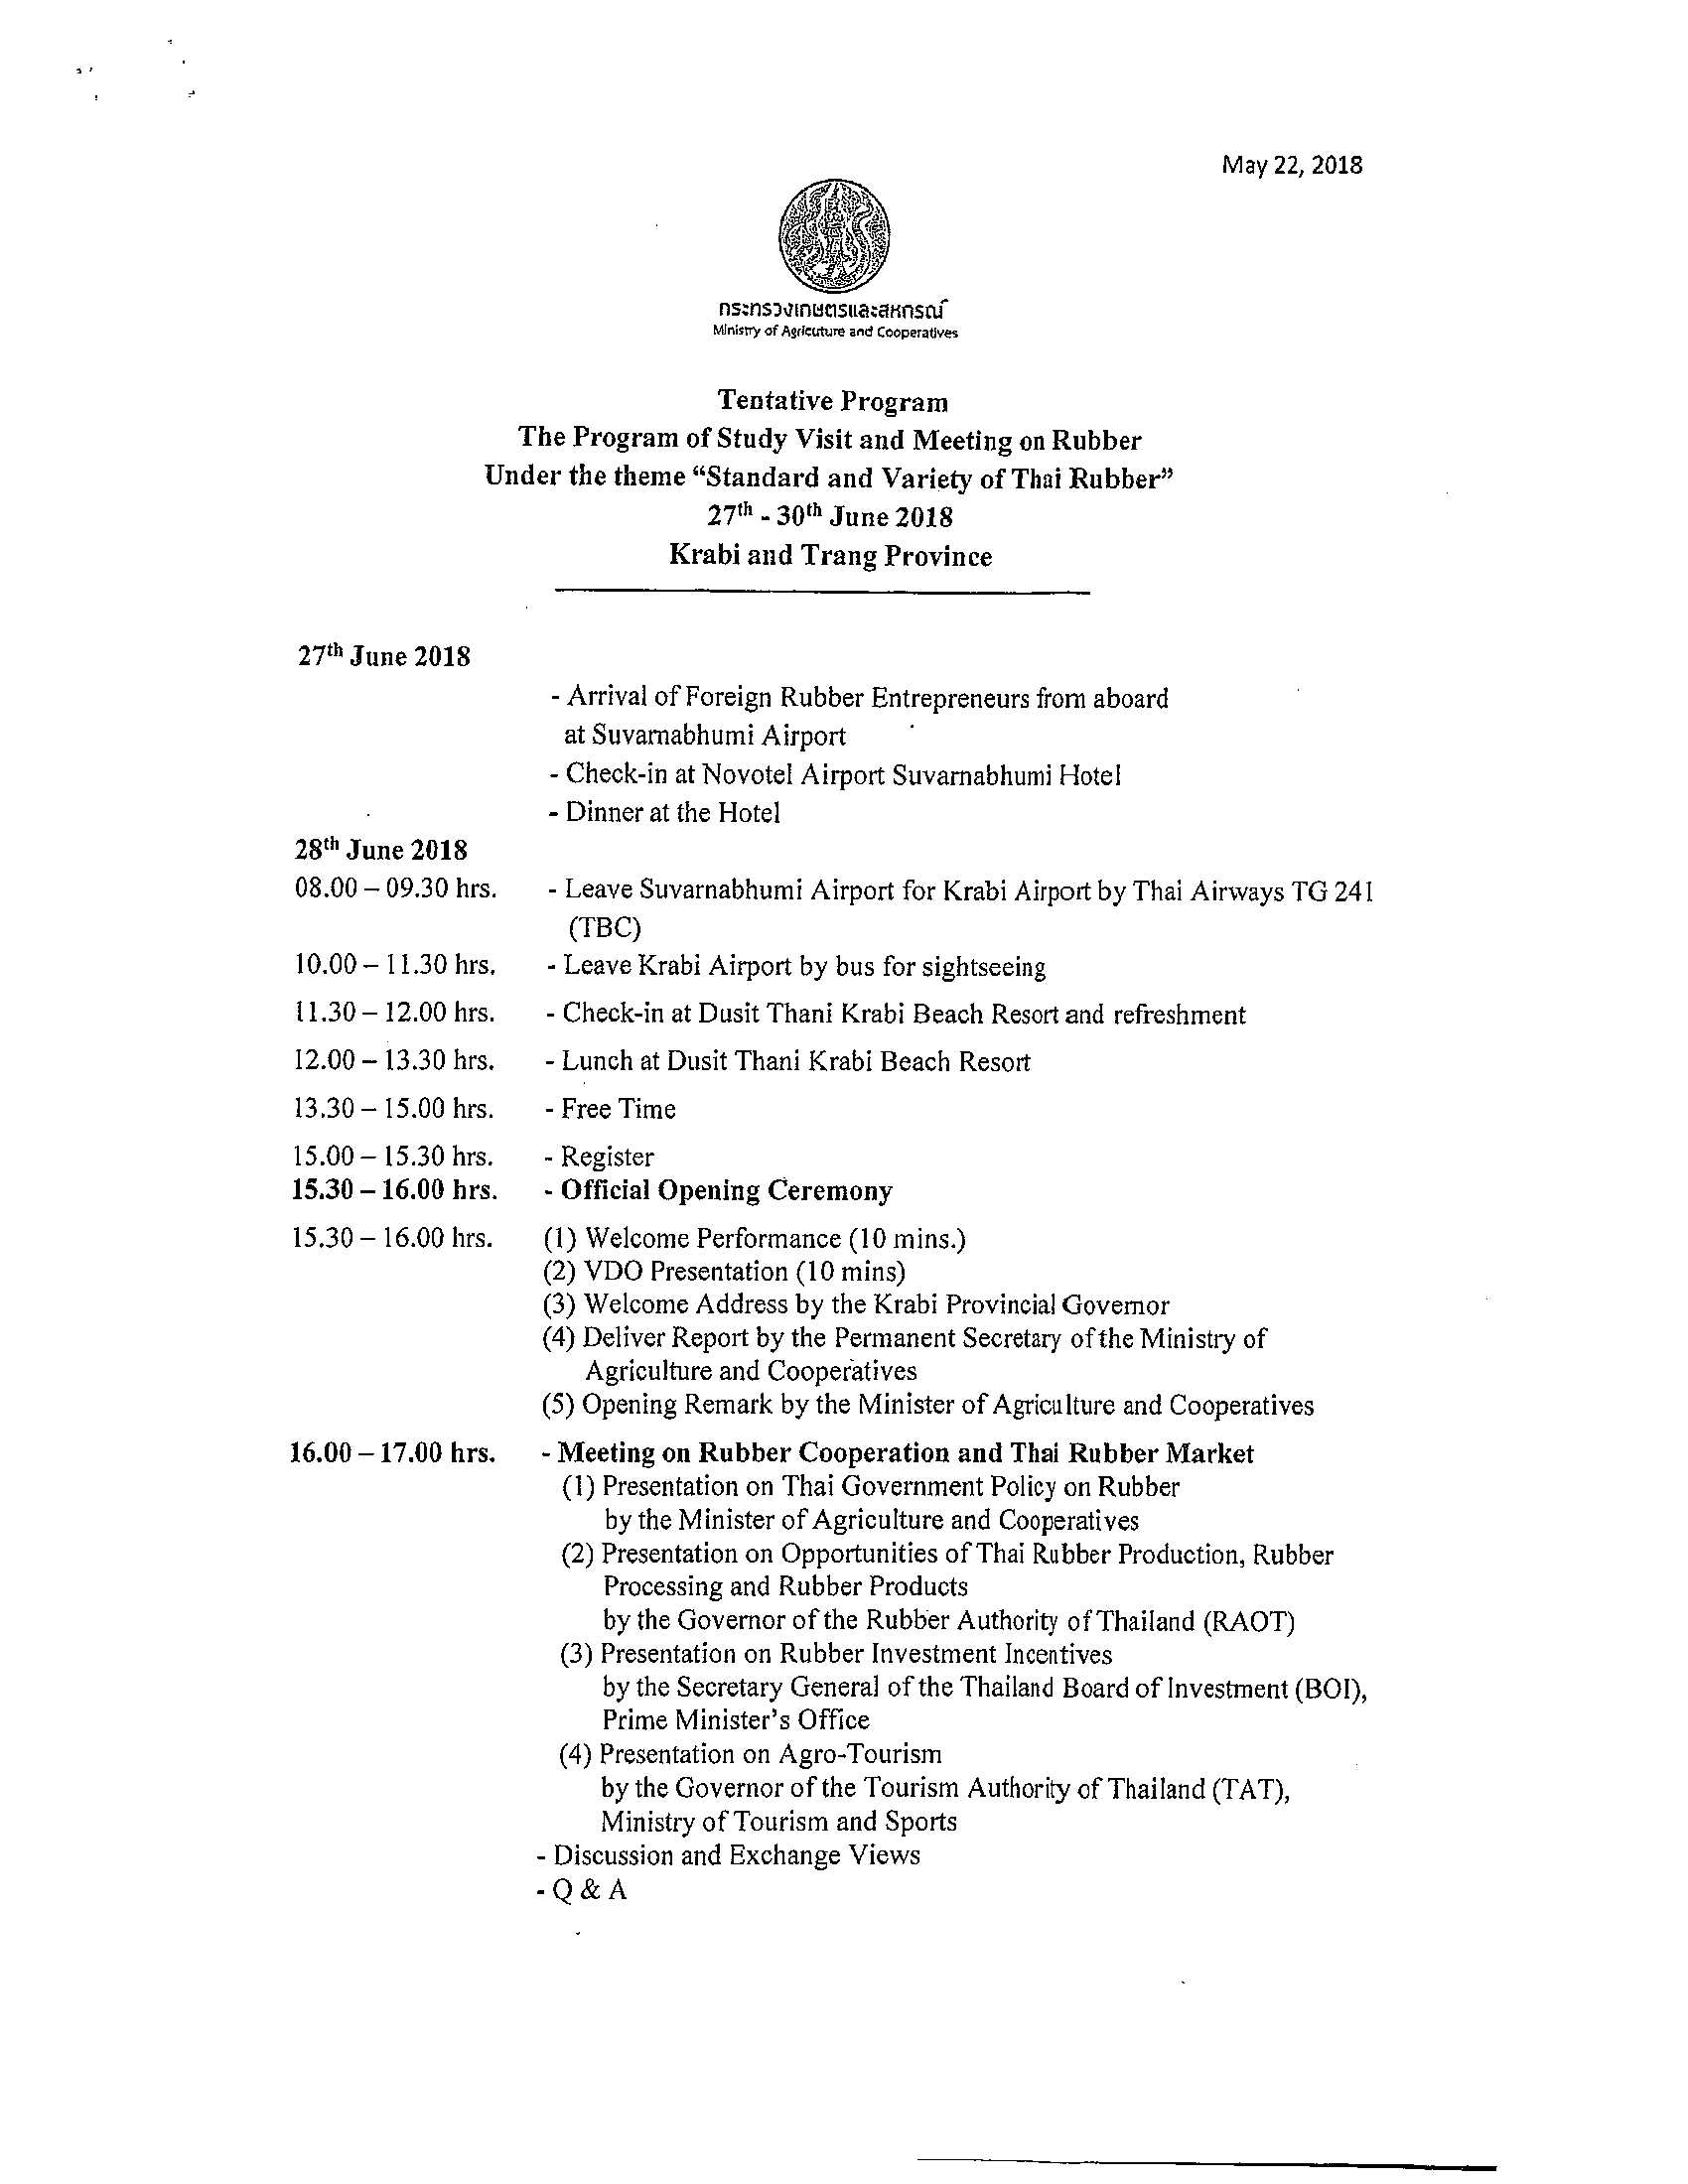 Invitation to Participate in the Study Visit and the Meeting on Thai Rubber in Krabi and Trang Provinces, Thailand (28-30 June 2018)